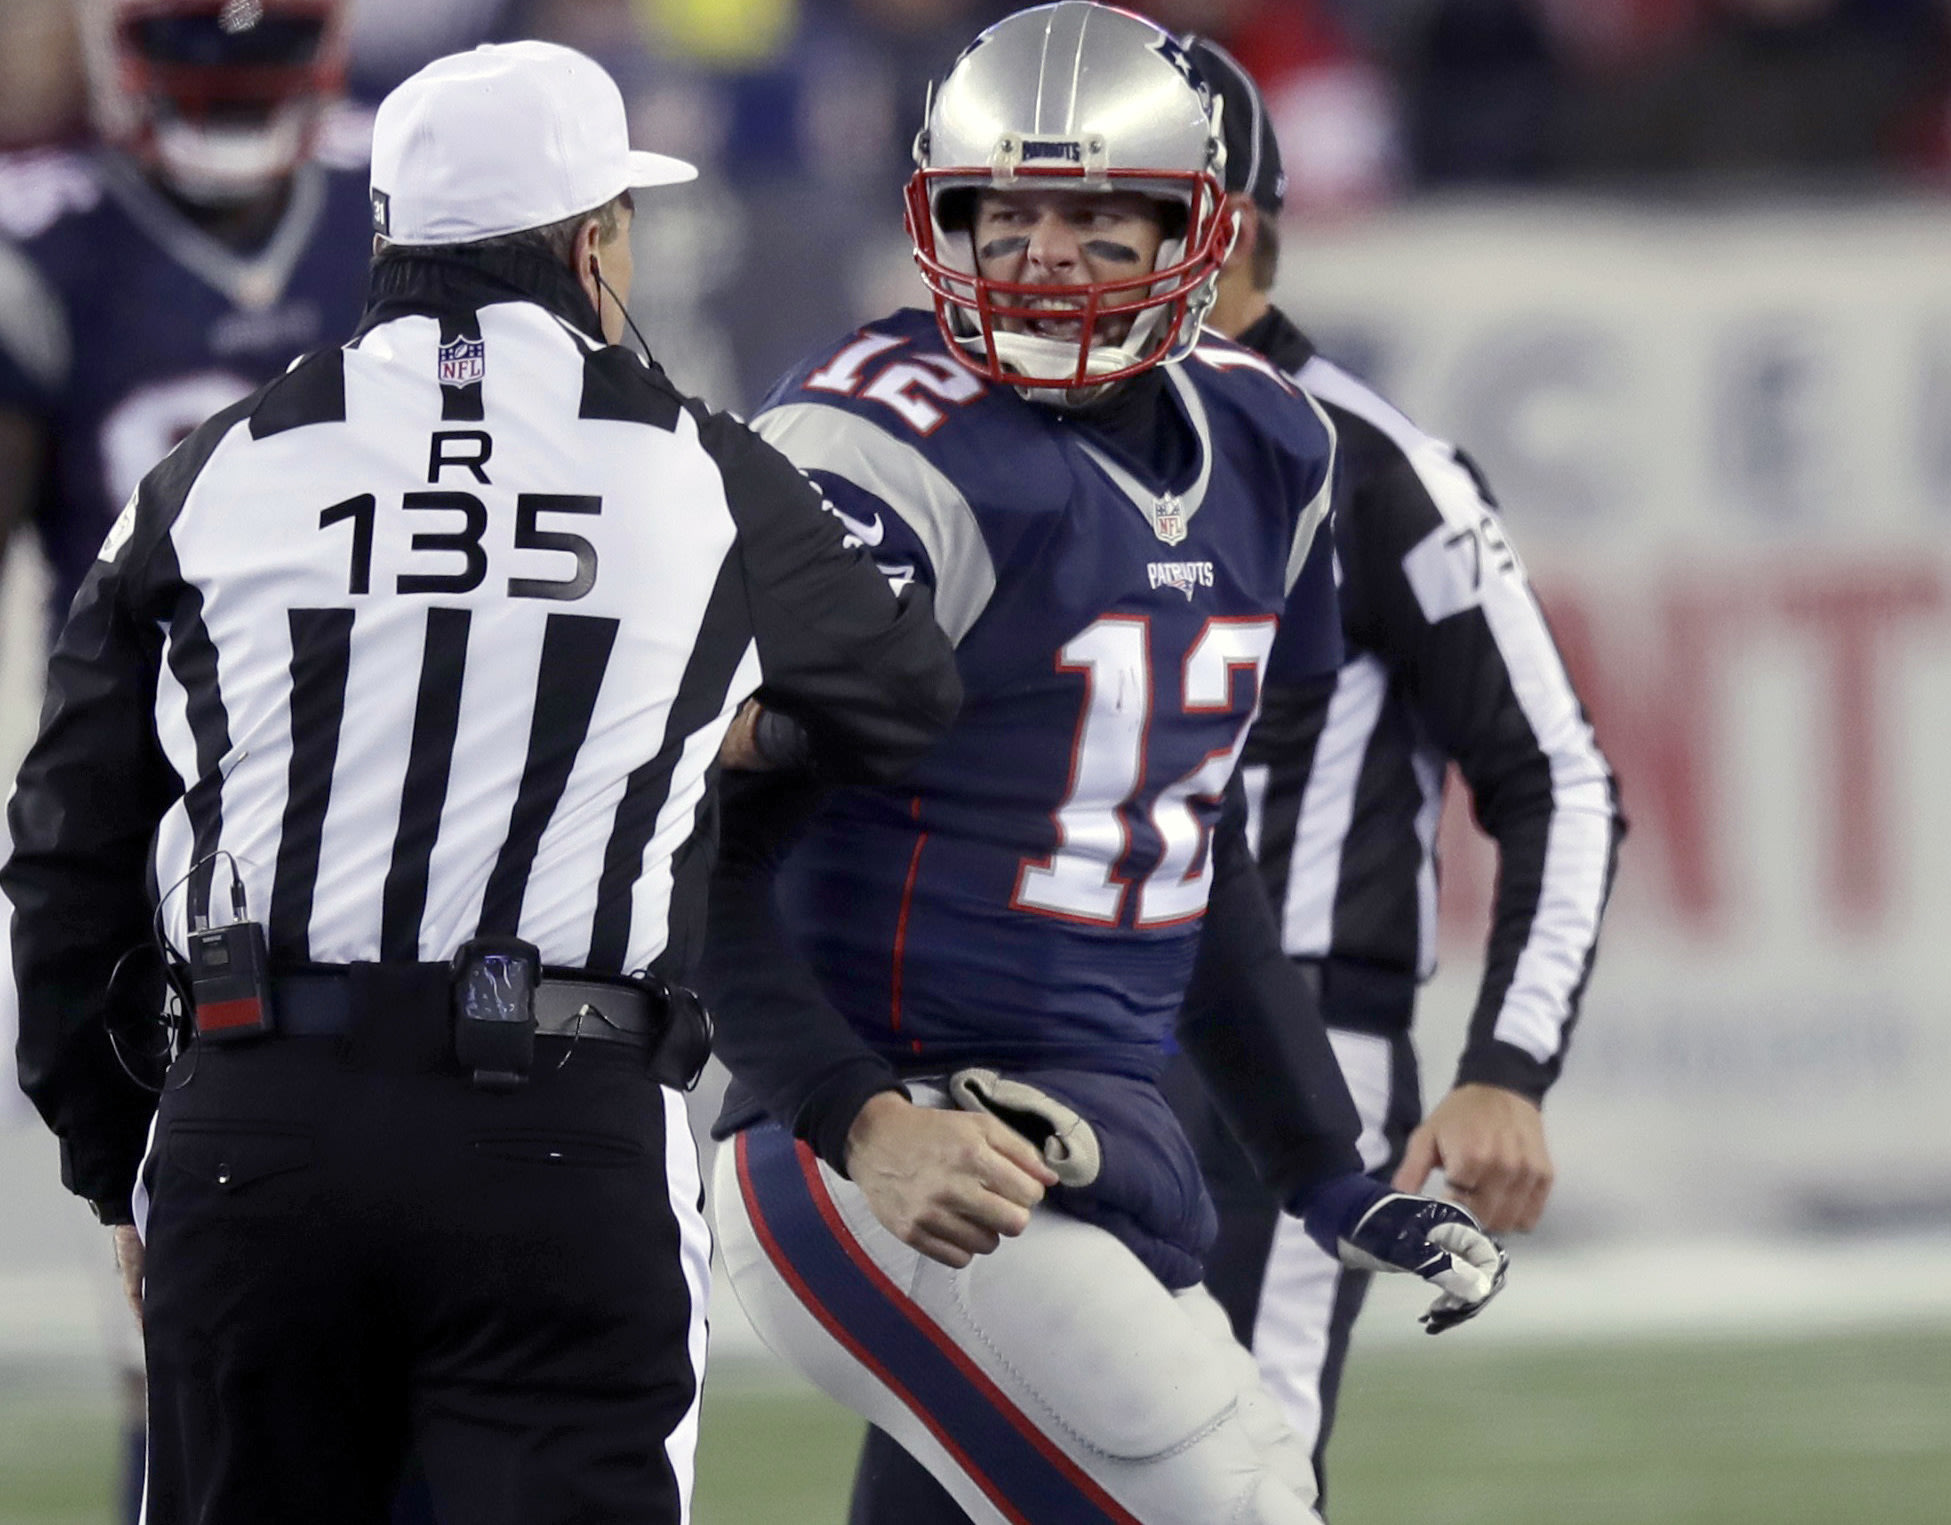 New England Patriots quarterback Tom Brady was not happy with a hit from Jadeveon Clowney. (AP)